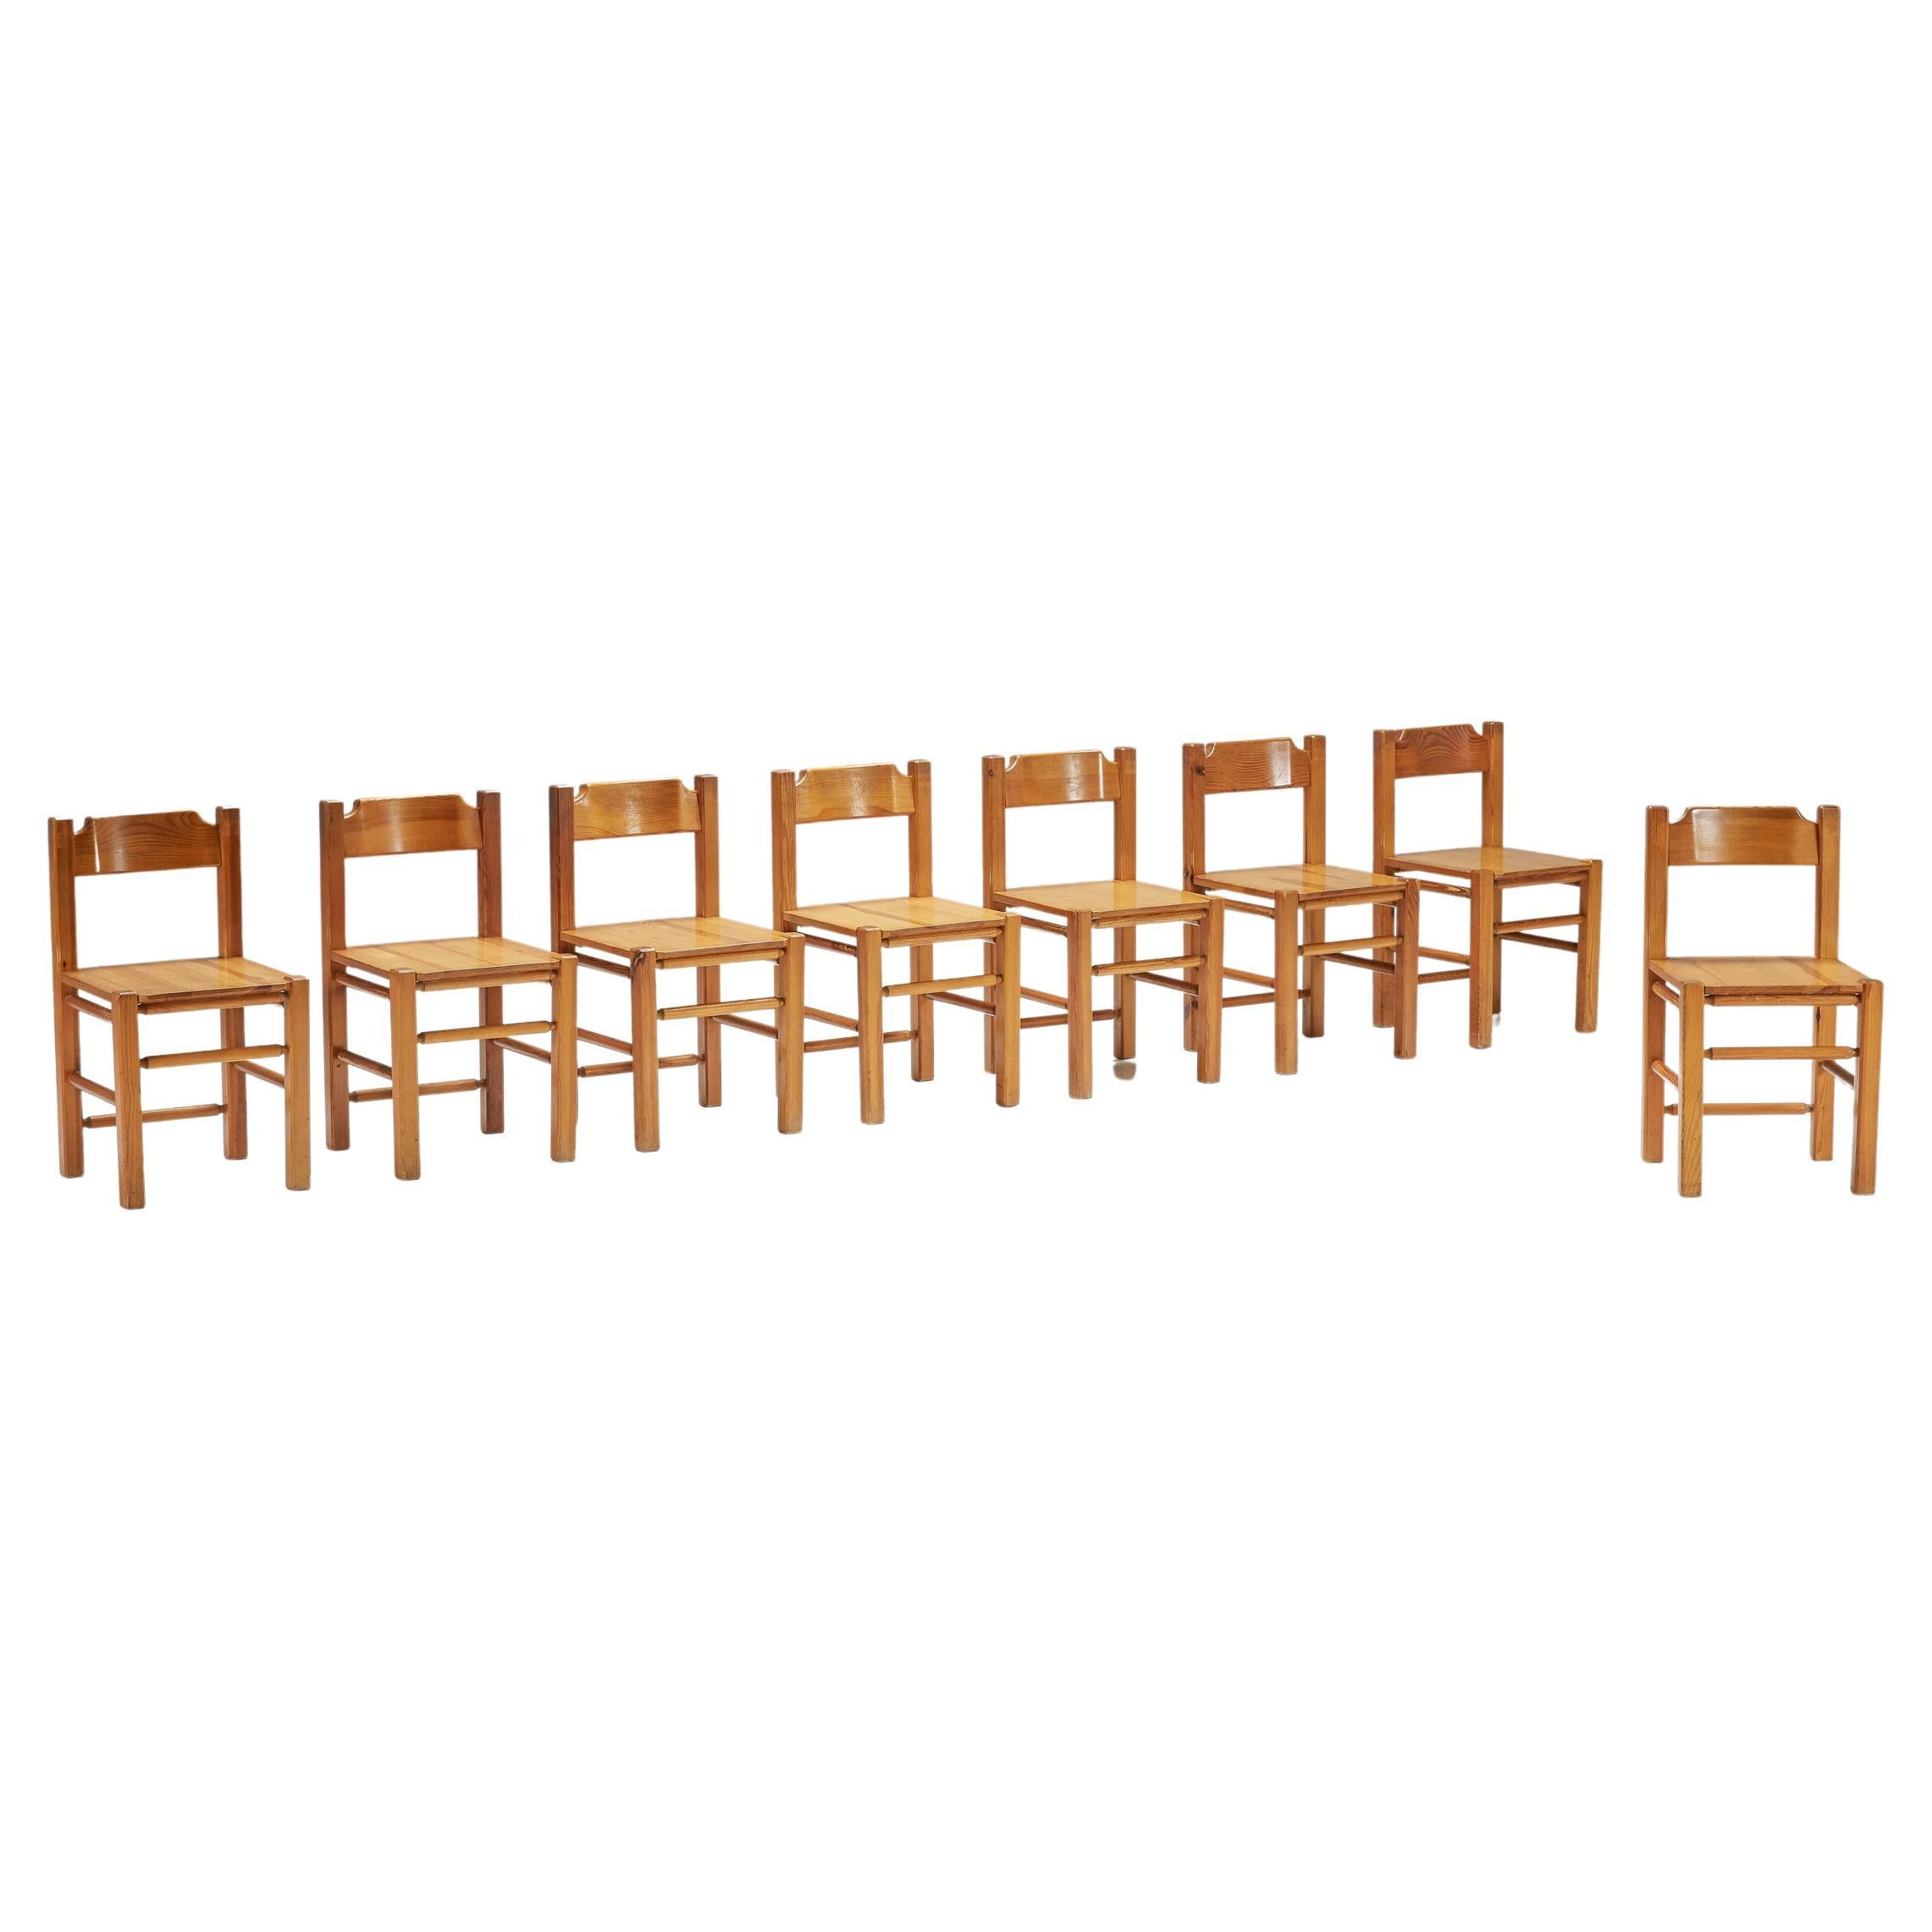 Charlotte Perriand Inspired Pine Dining Chairs